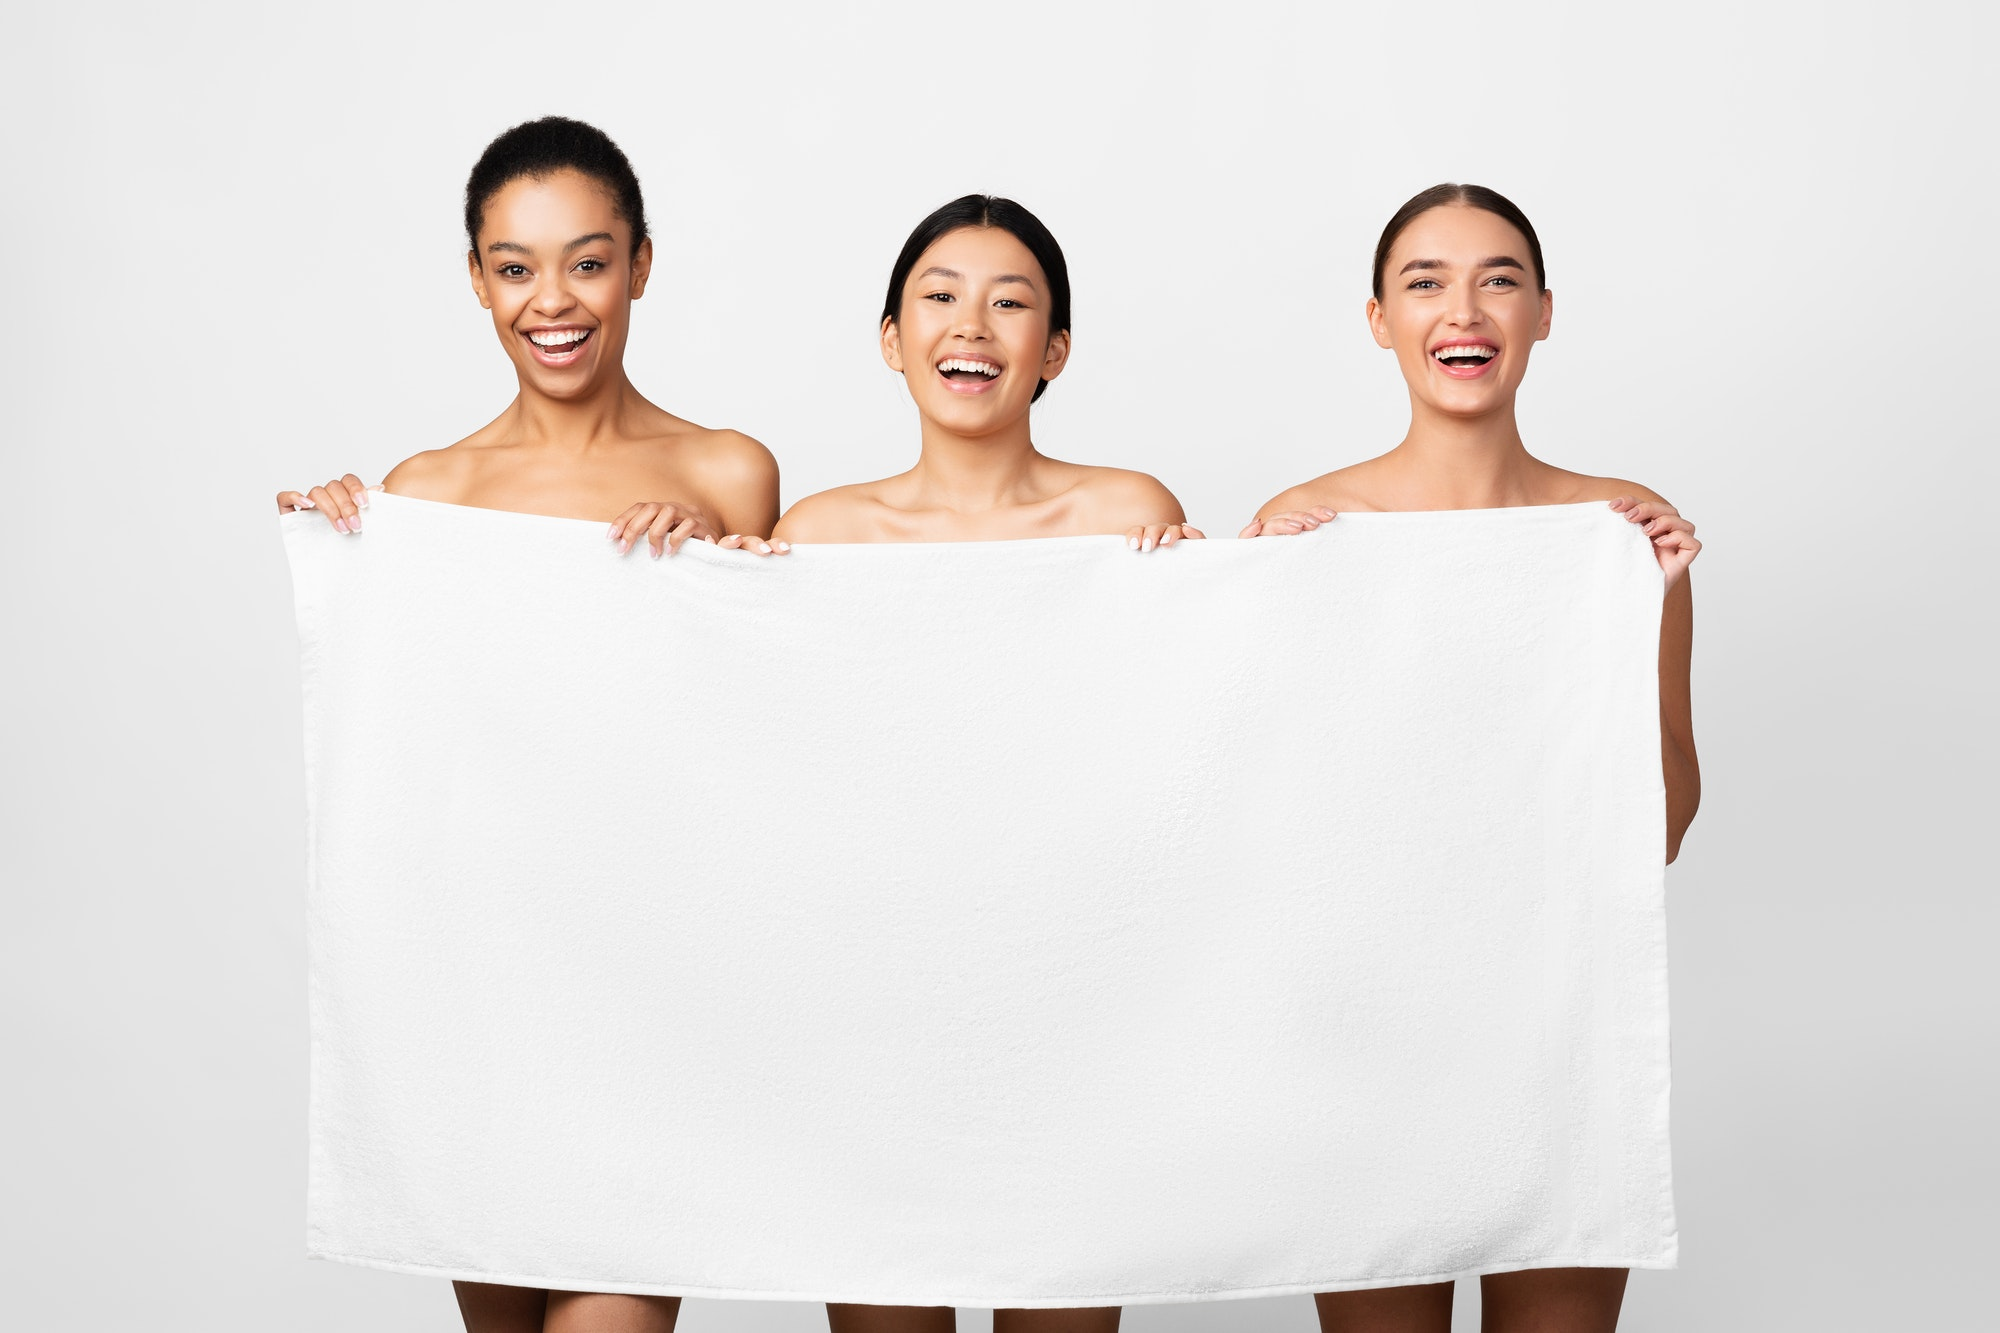 Three Multiethnic Women Holding Bath Towel Posing, Studio Shot